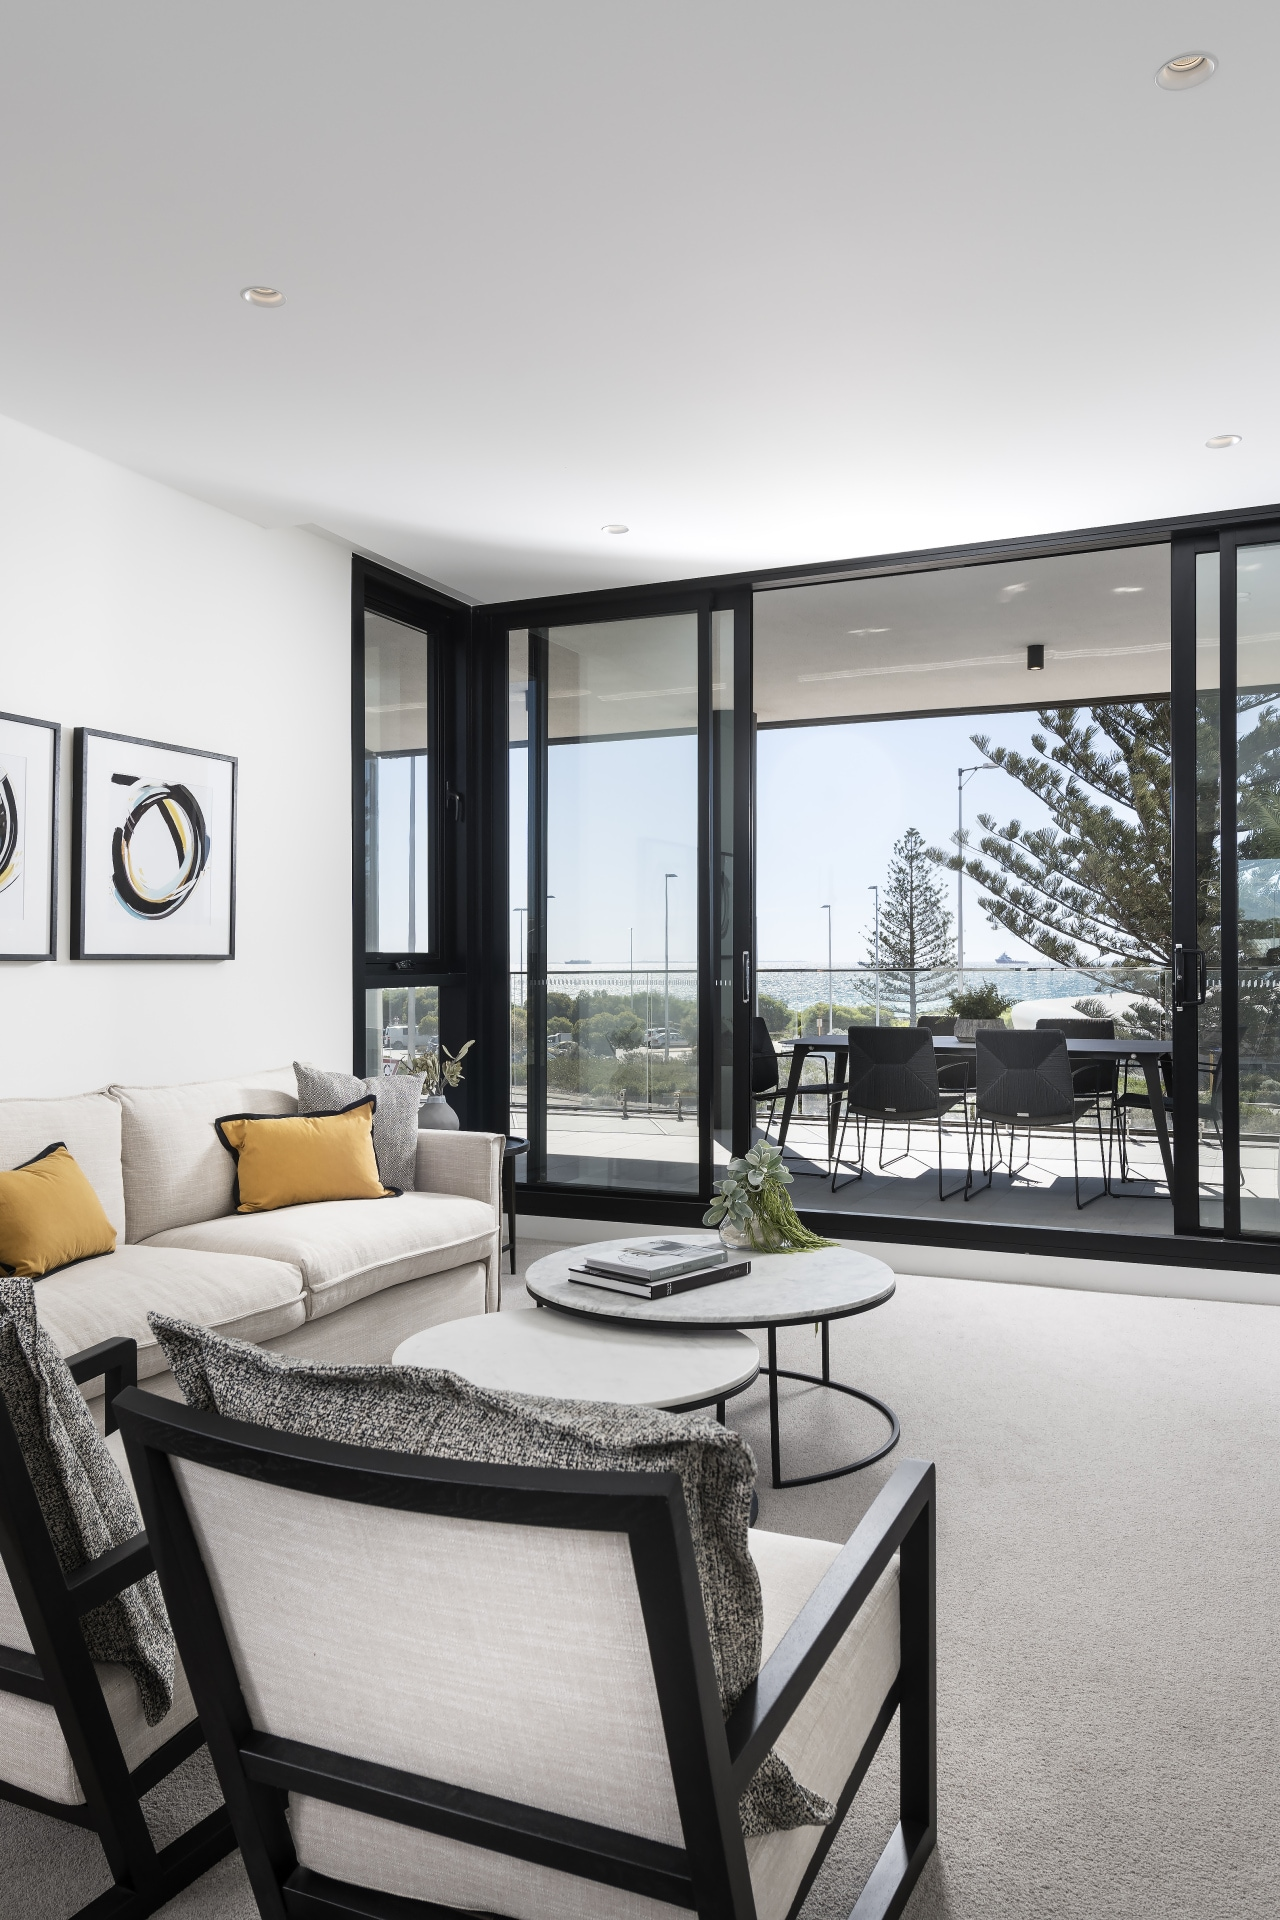 Perth's finest oceanside address could be yours